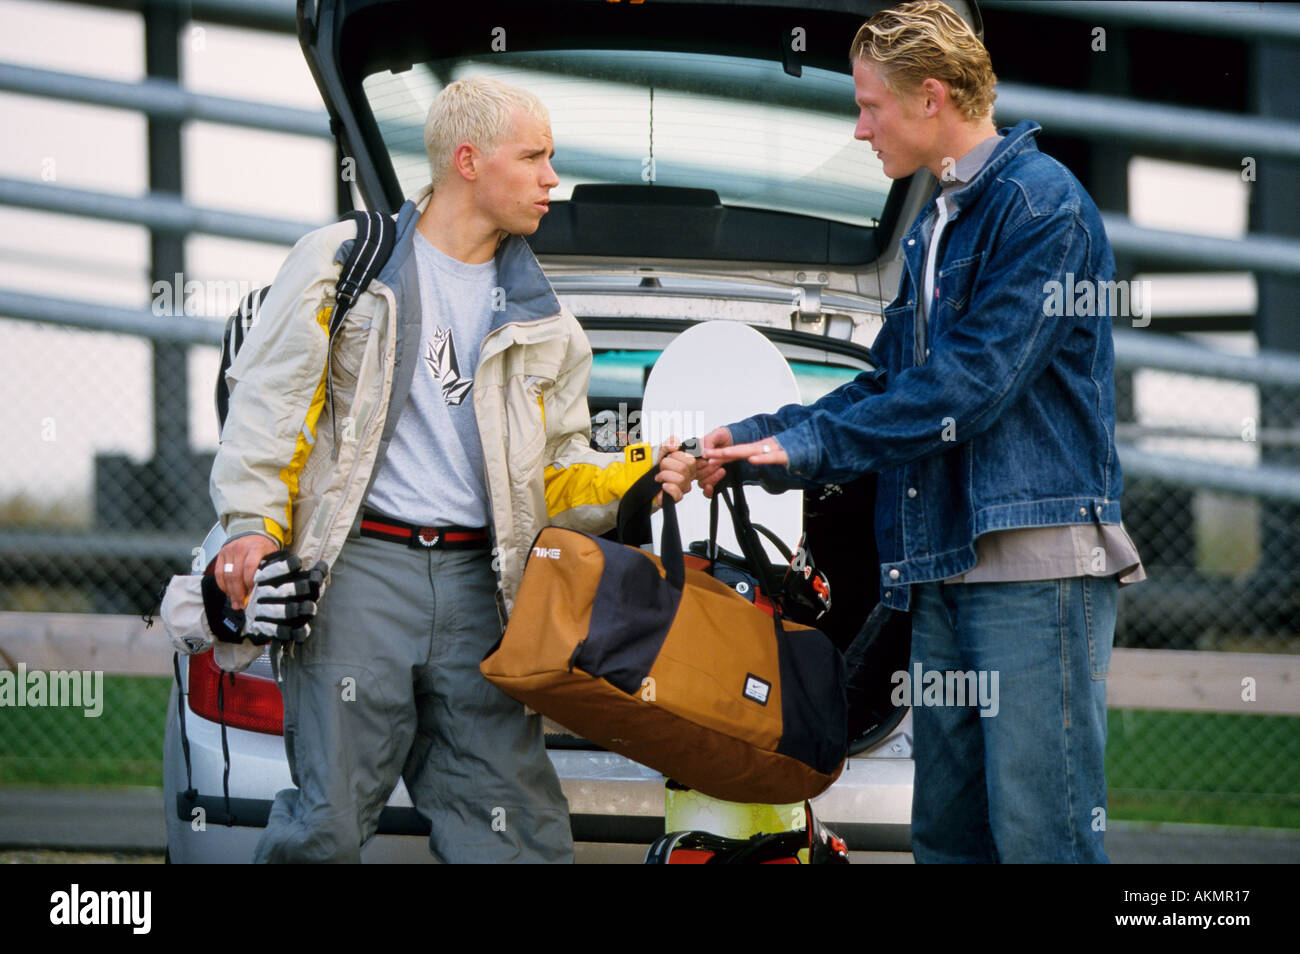 Germany Free time Two young men next to a car they are putting their luggage into the boot  - Stock Image